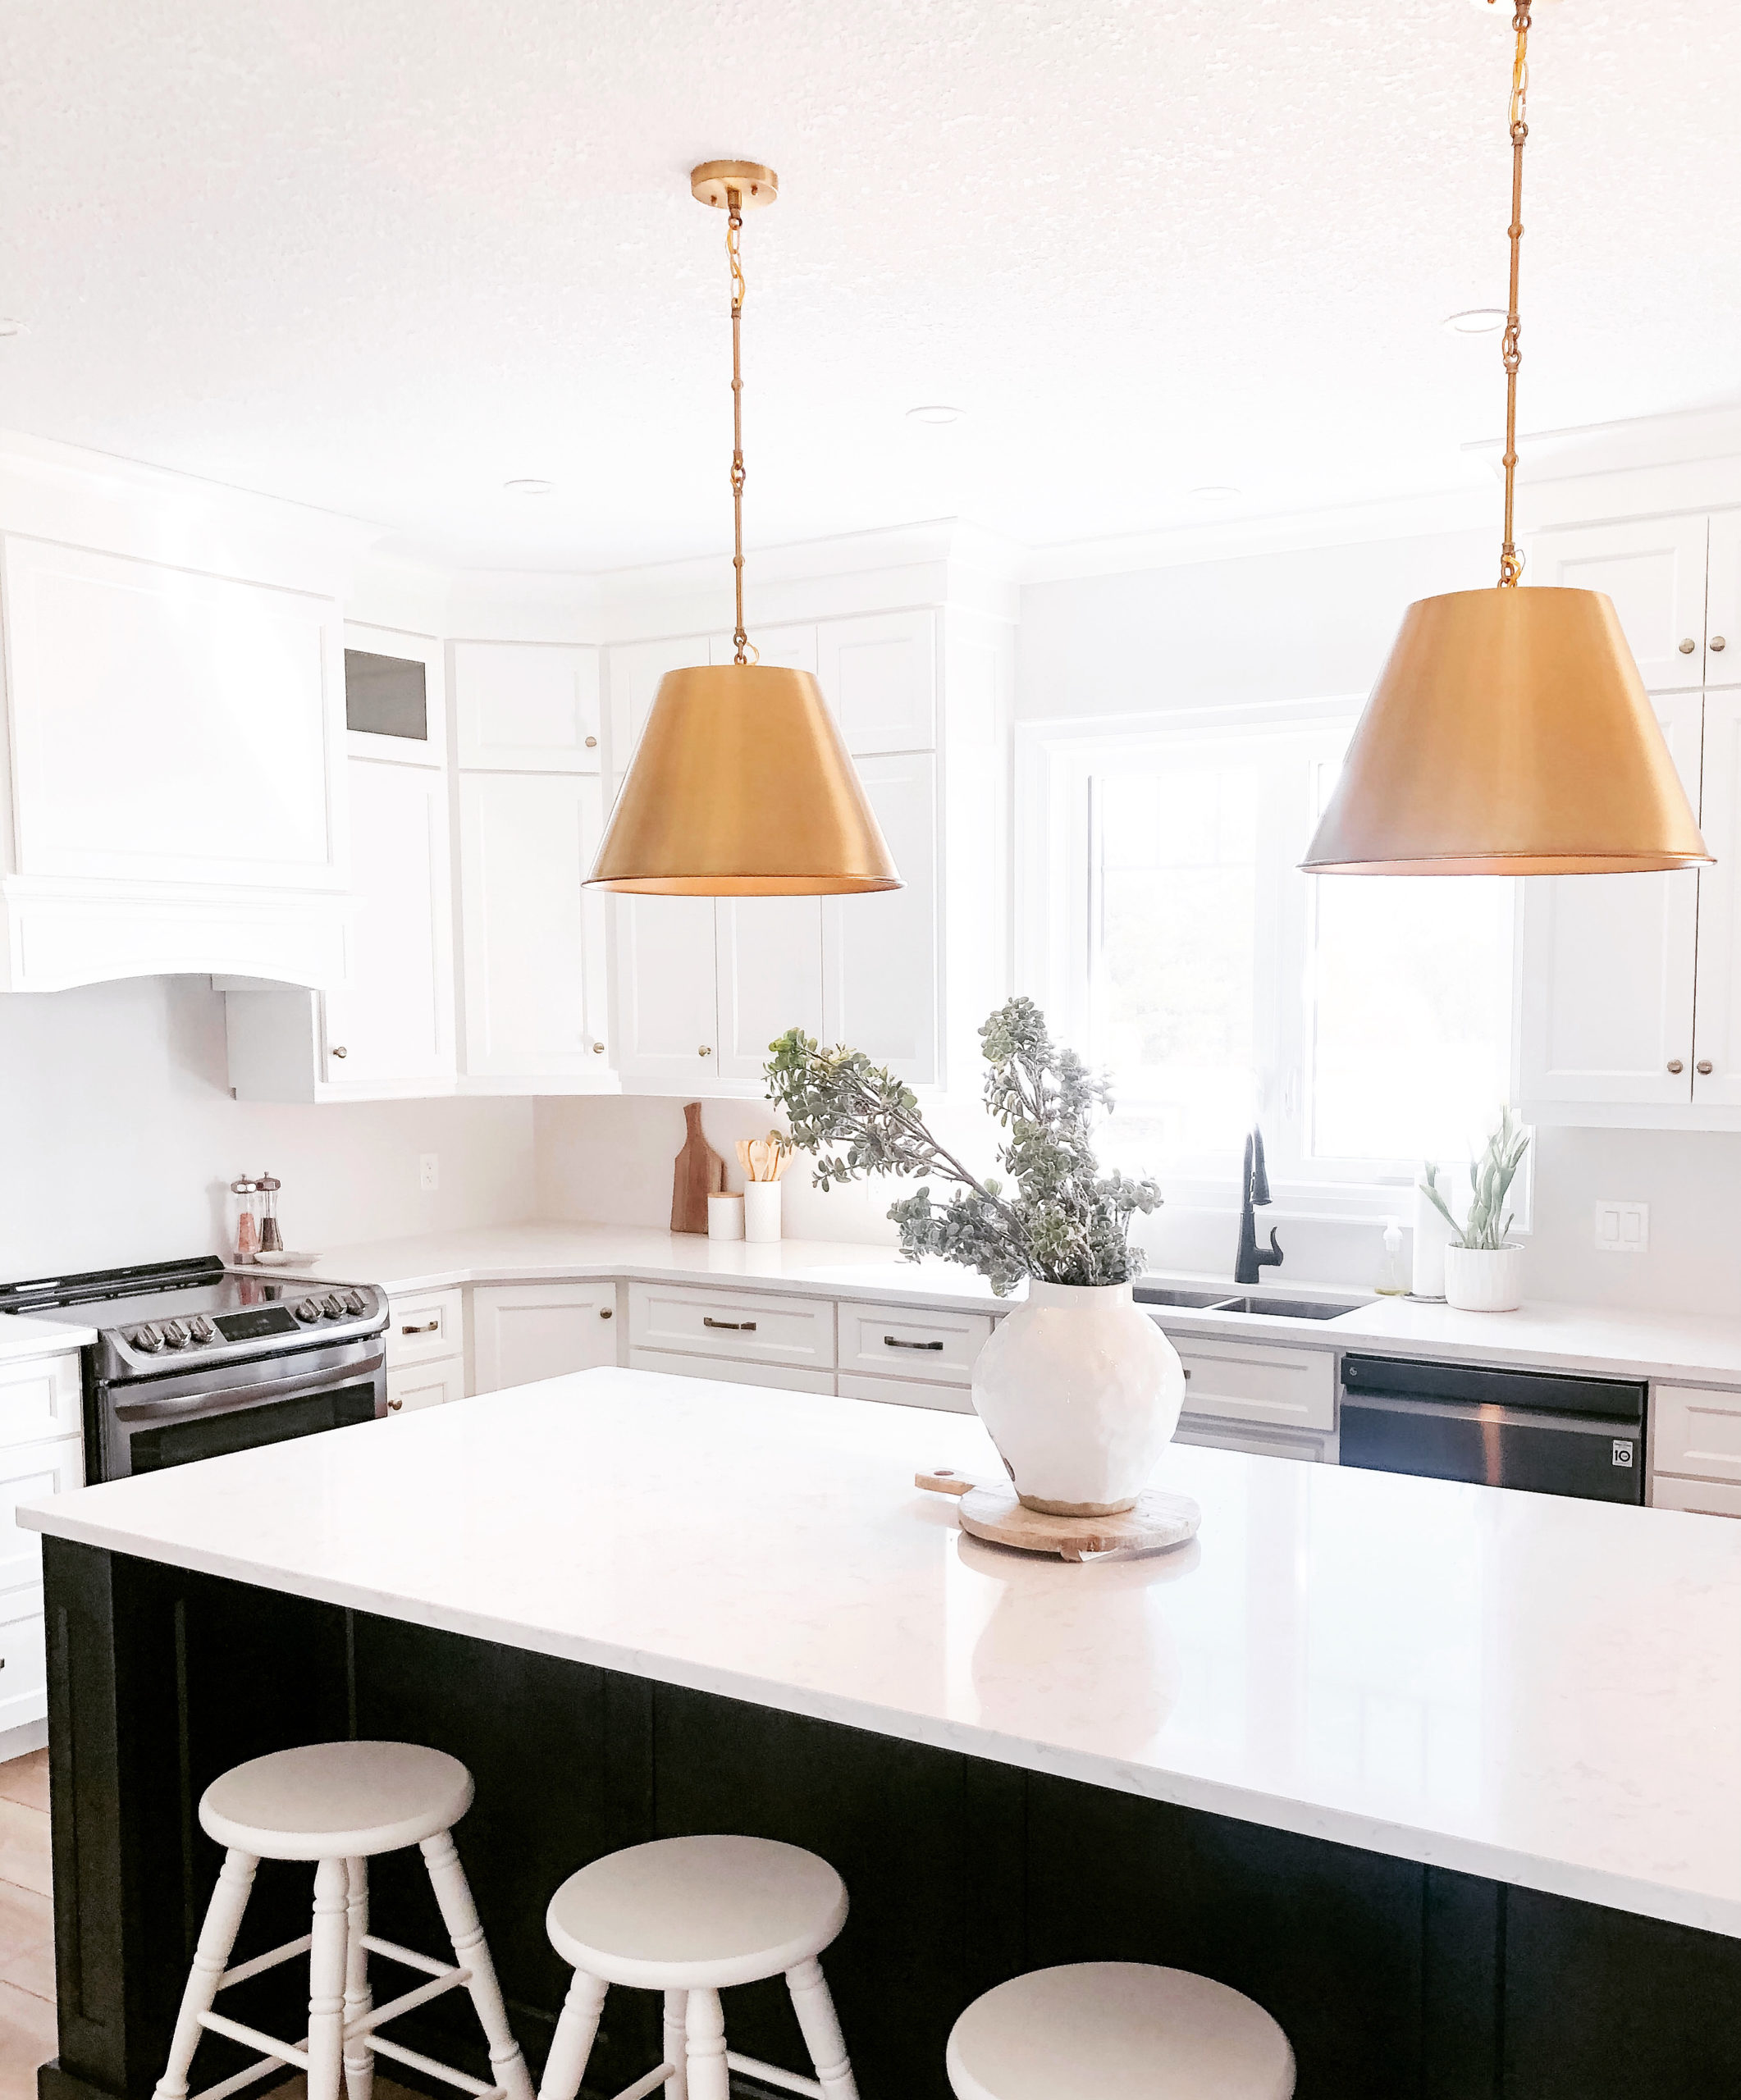 kitchen overview featuring gold pendant lights, white bar stools and white overhead range